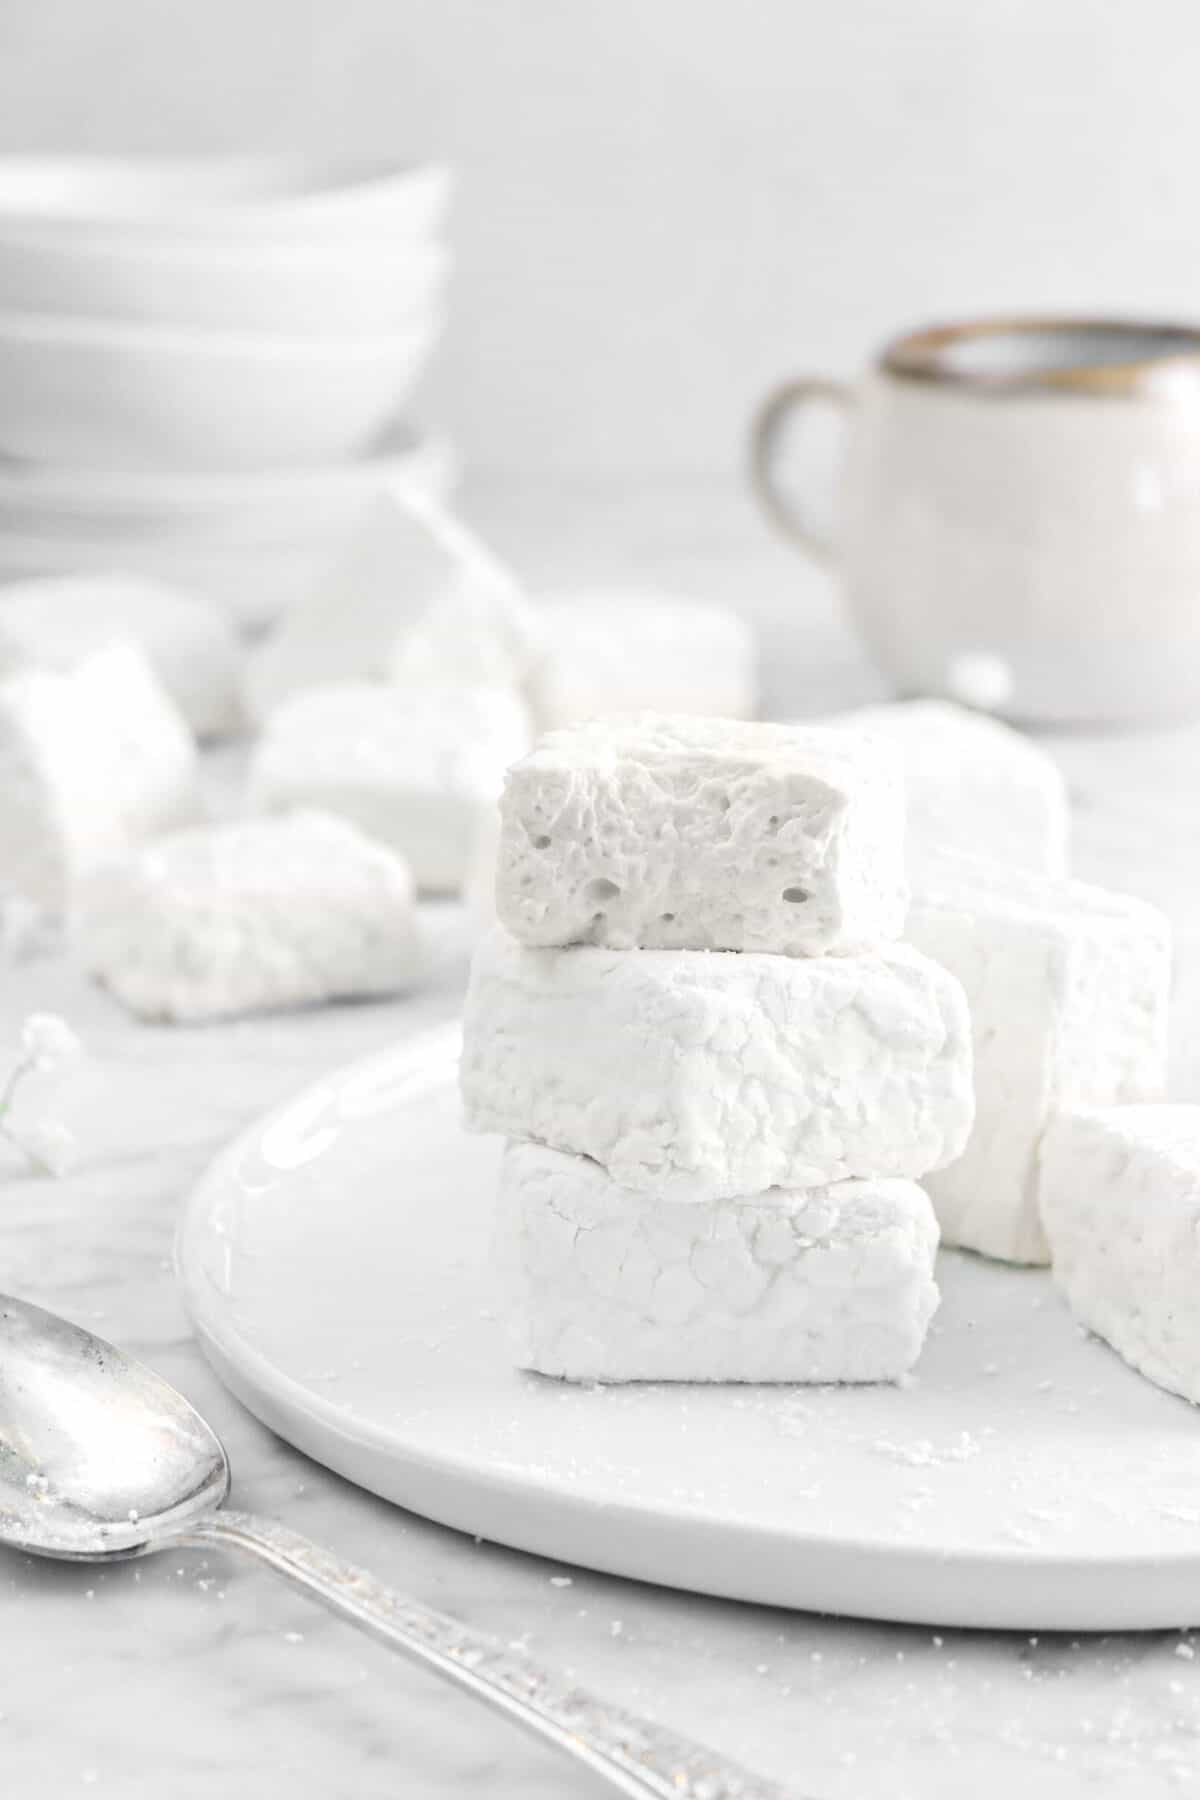 three stacked marshmallows on a white plate with a mug and plates behind